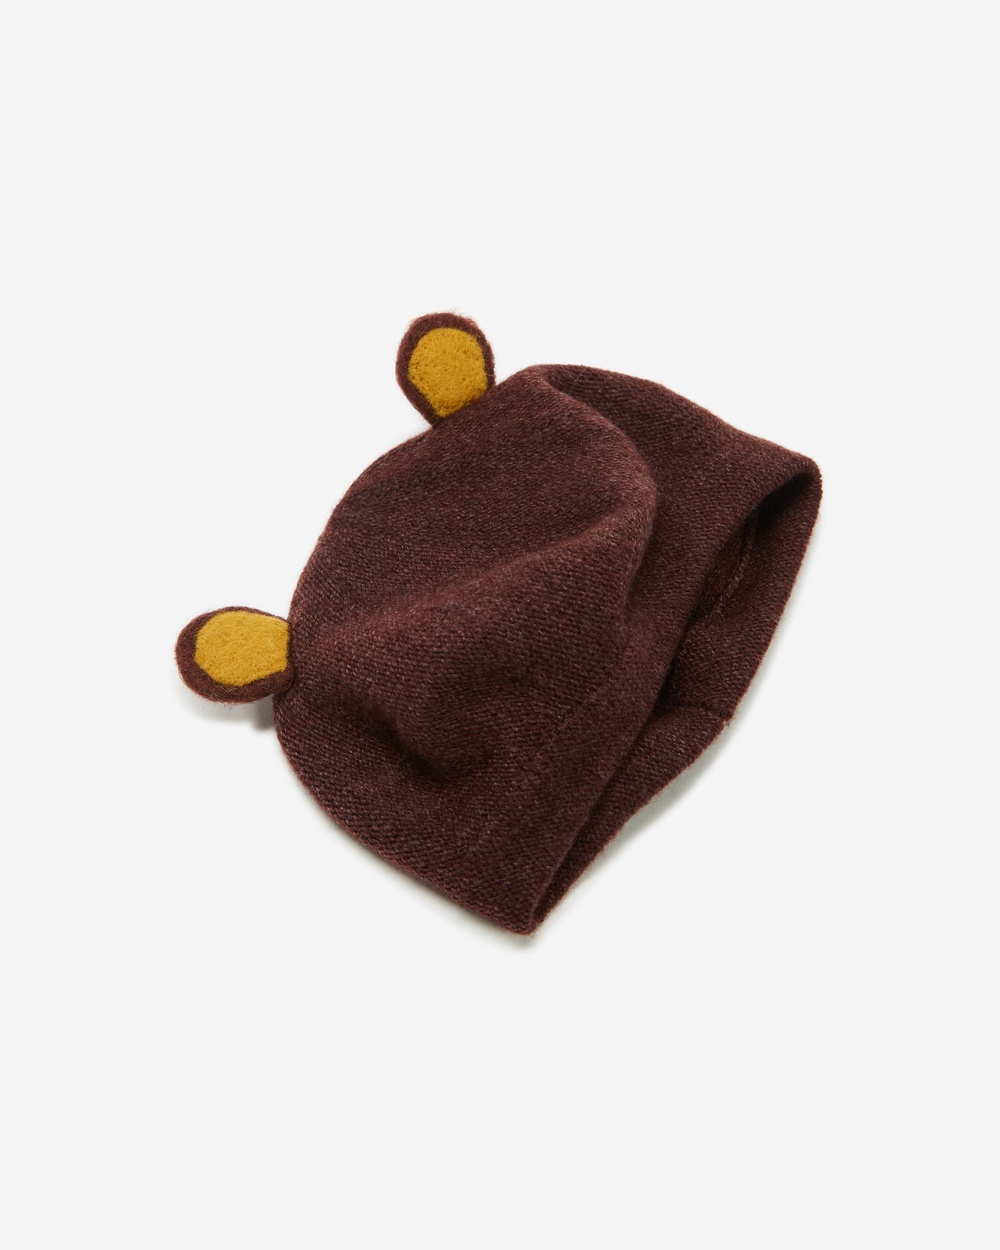 Billy Loves Audrey Beret with Ears Kids Hats Brown